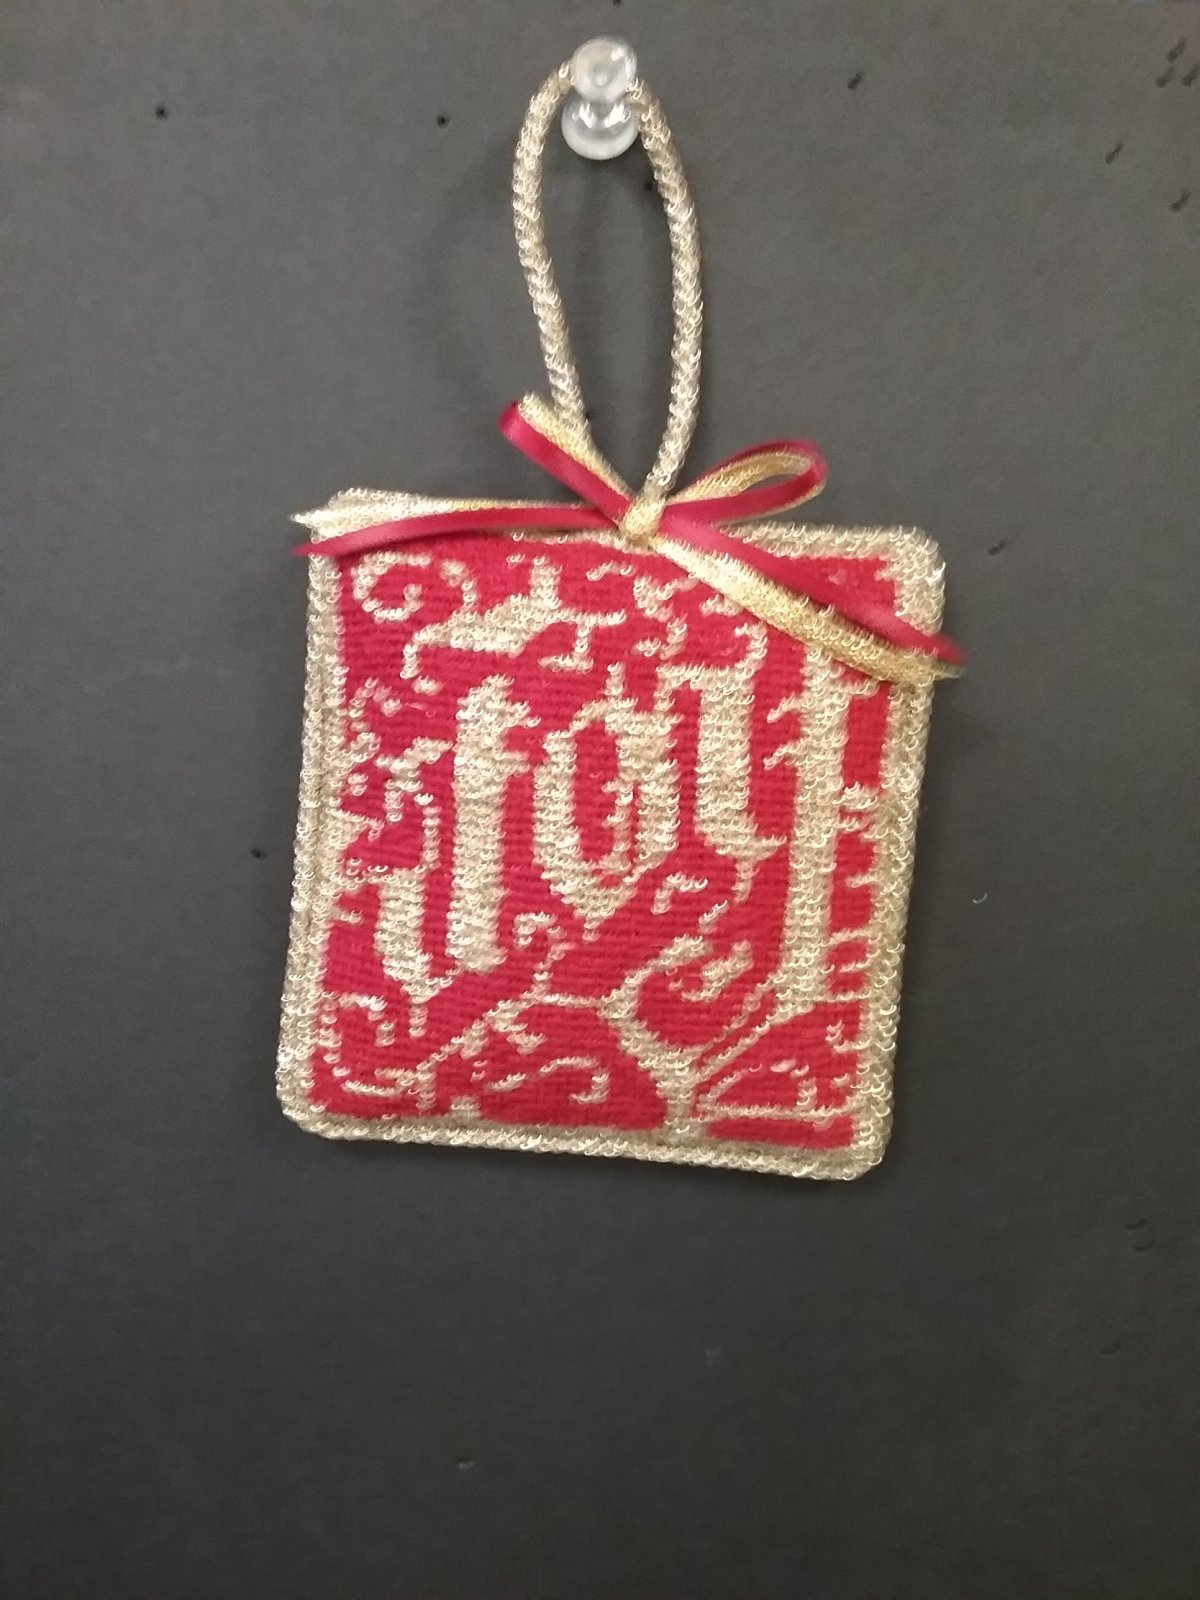 NP Joy Ornament - Stitched by Reidi L.